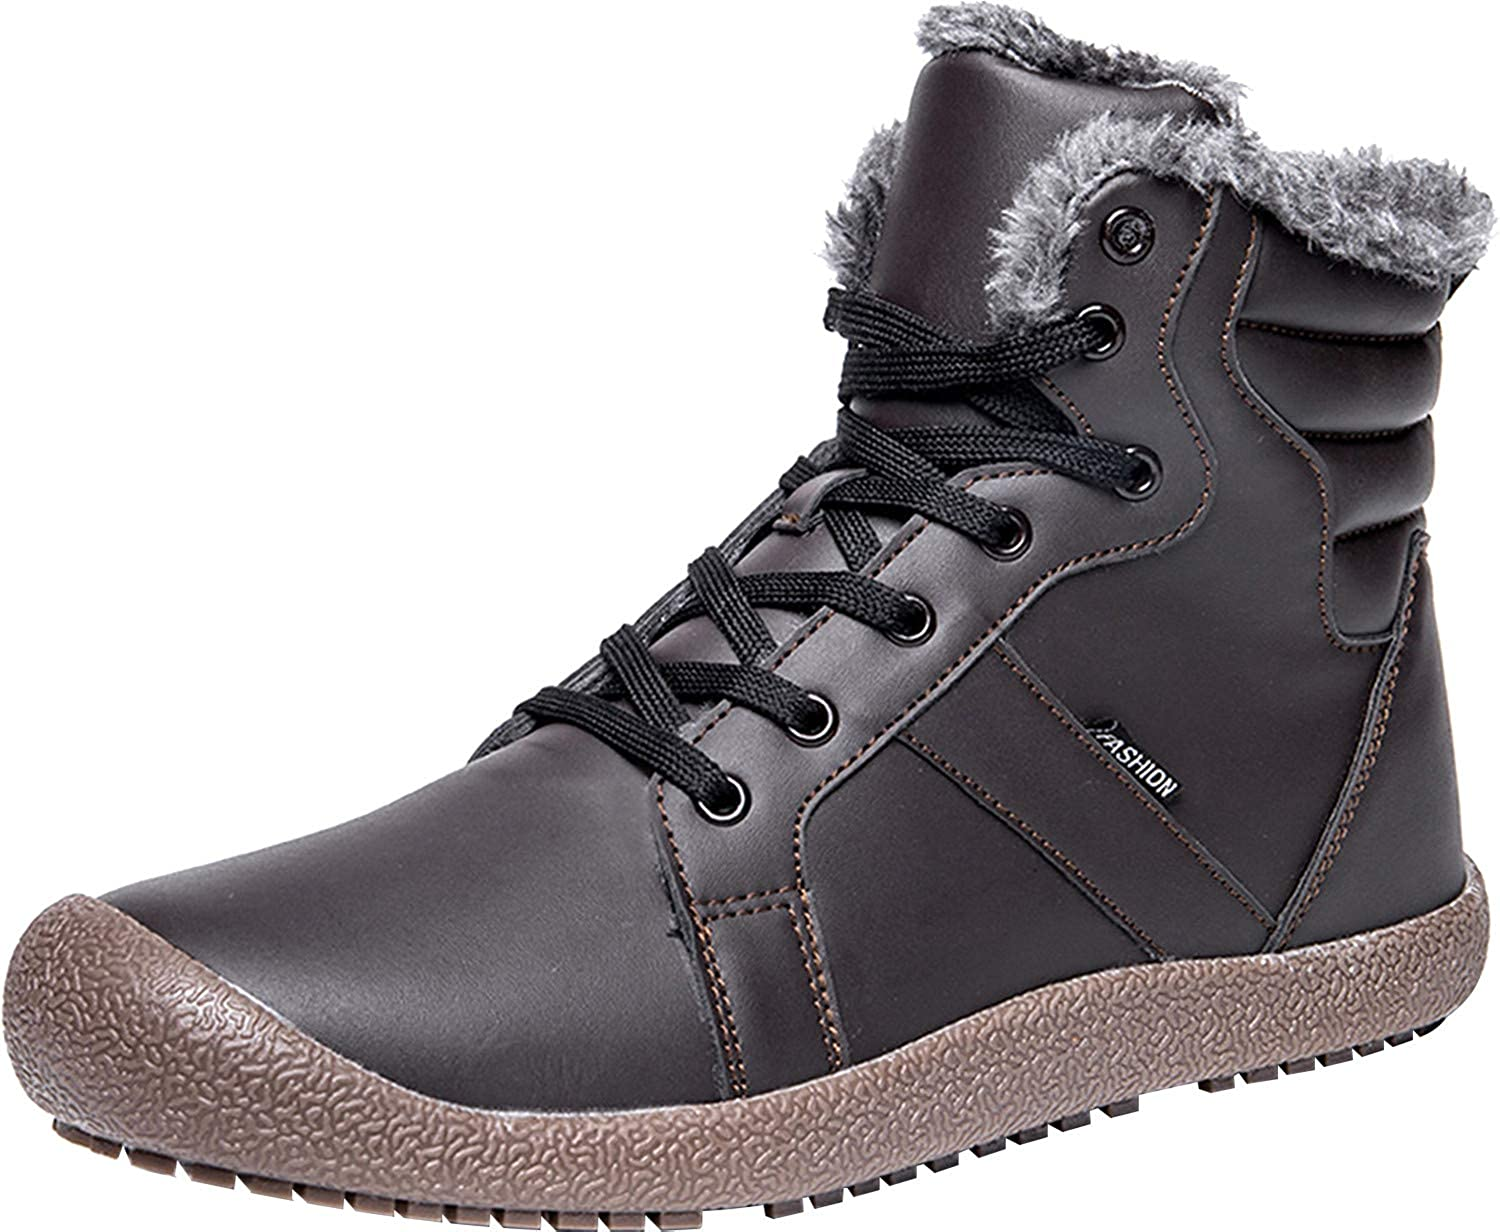 L-RUN Mens Snow Boots Winter Fur Boots Waterproof Ankle Bootie Men Casual shoes